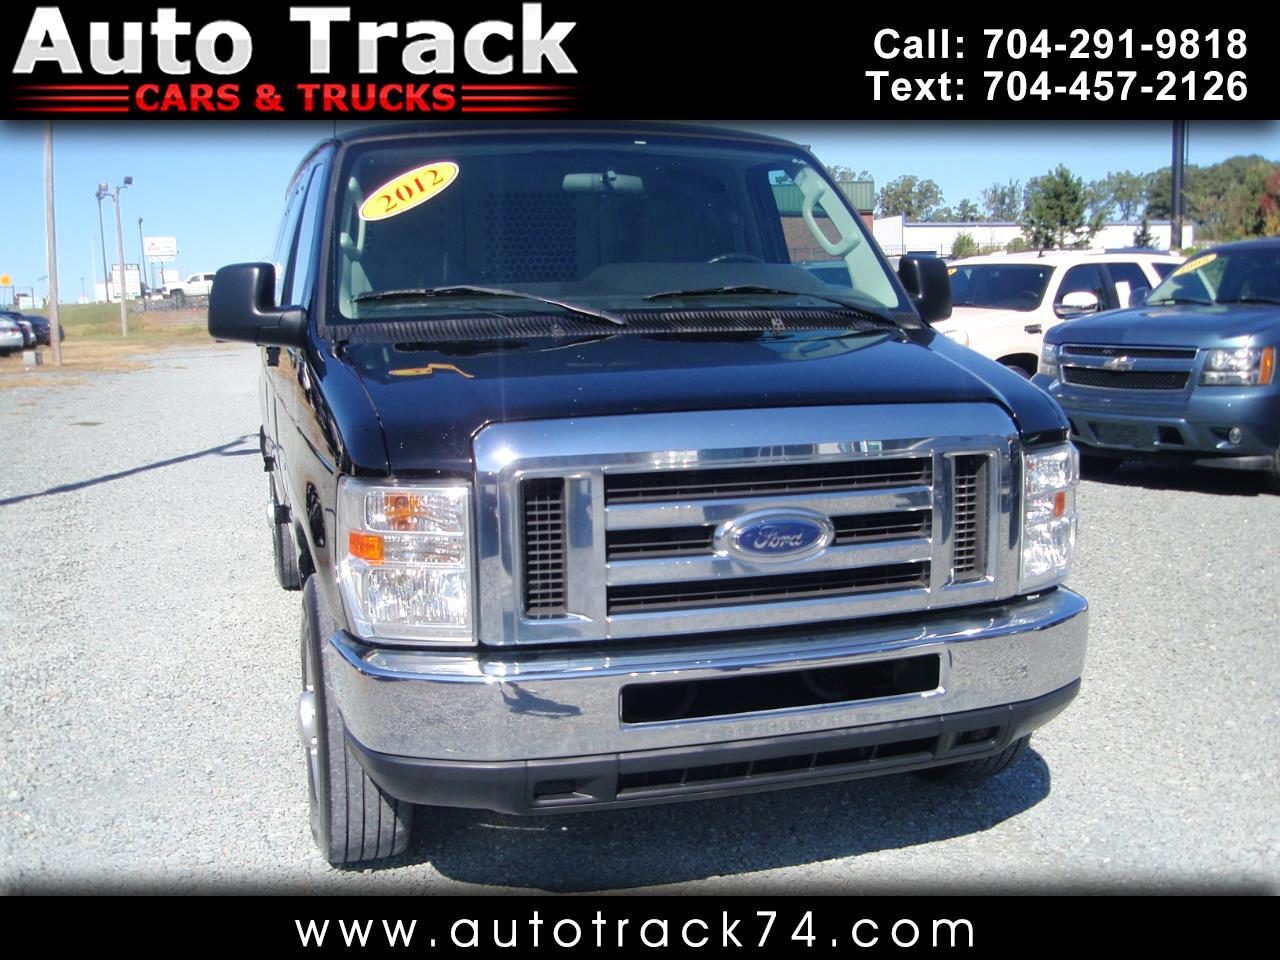 2012 Ford Econoline Cargo Van E-250 Ext Recreational